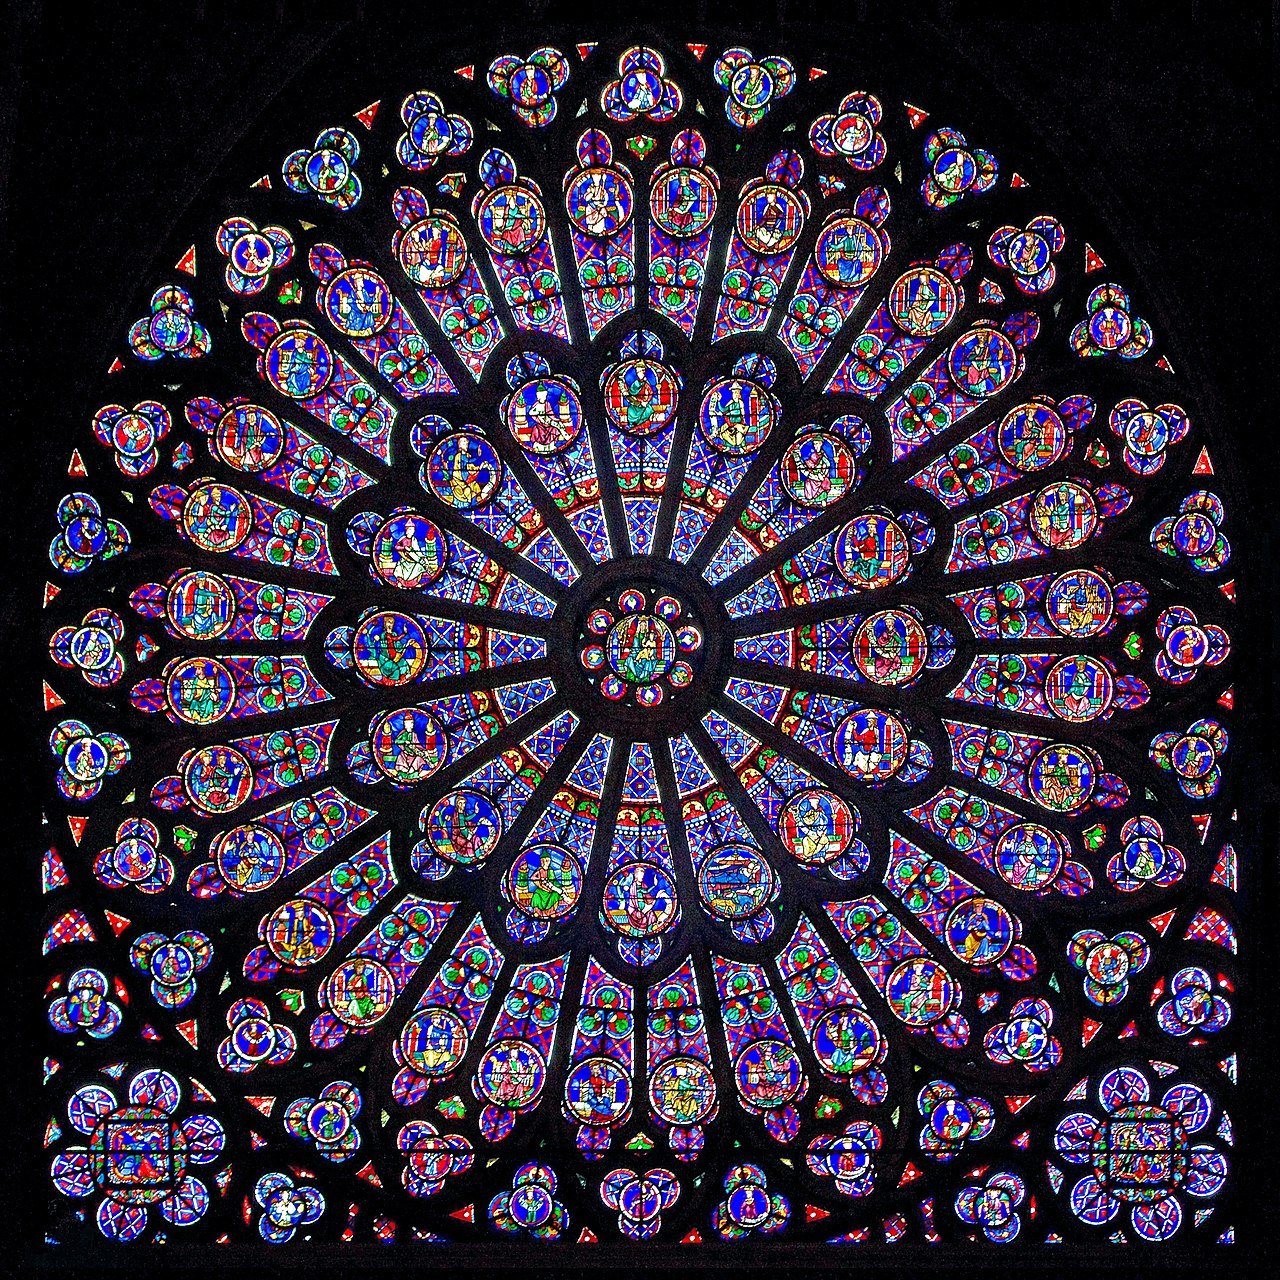 1280px-Gothic-Rayonnant_Rose-6 North rose window Notre Dame c1250